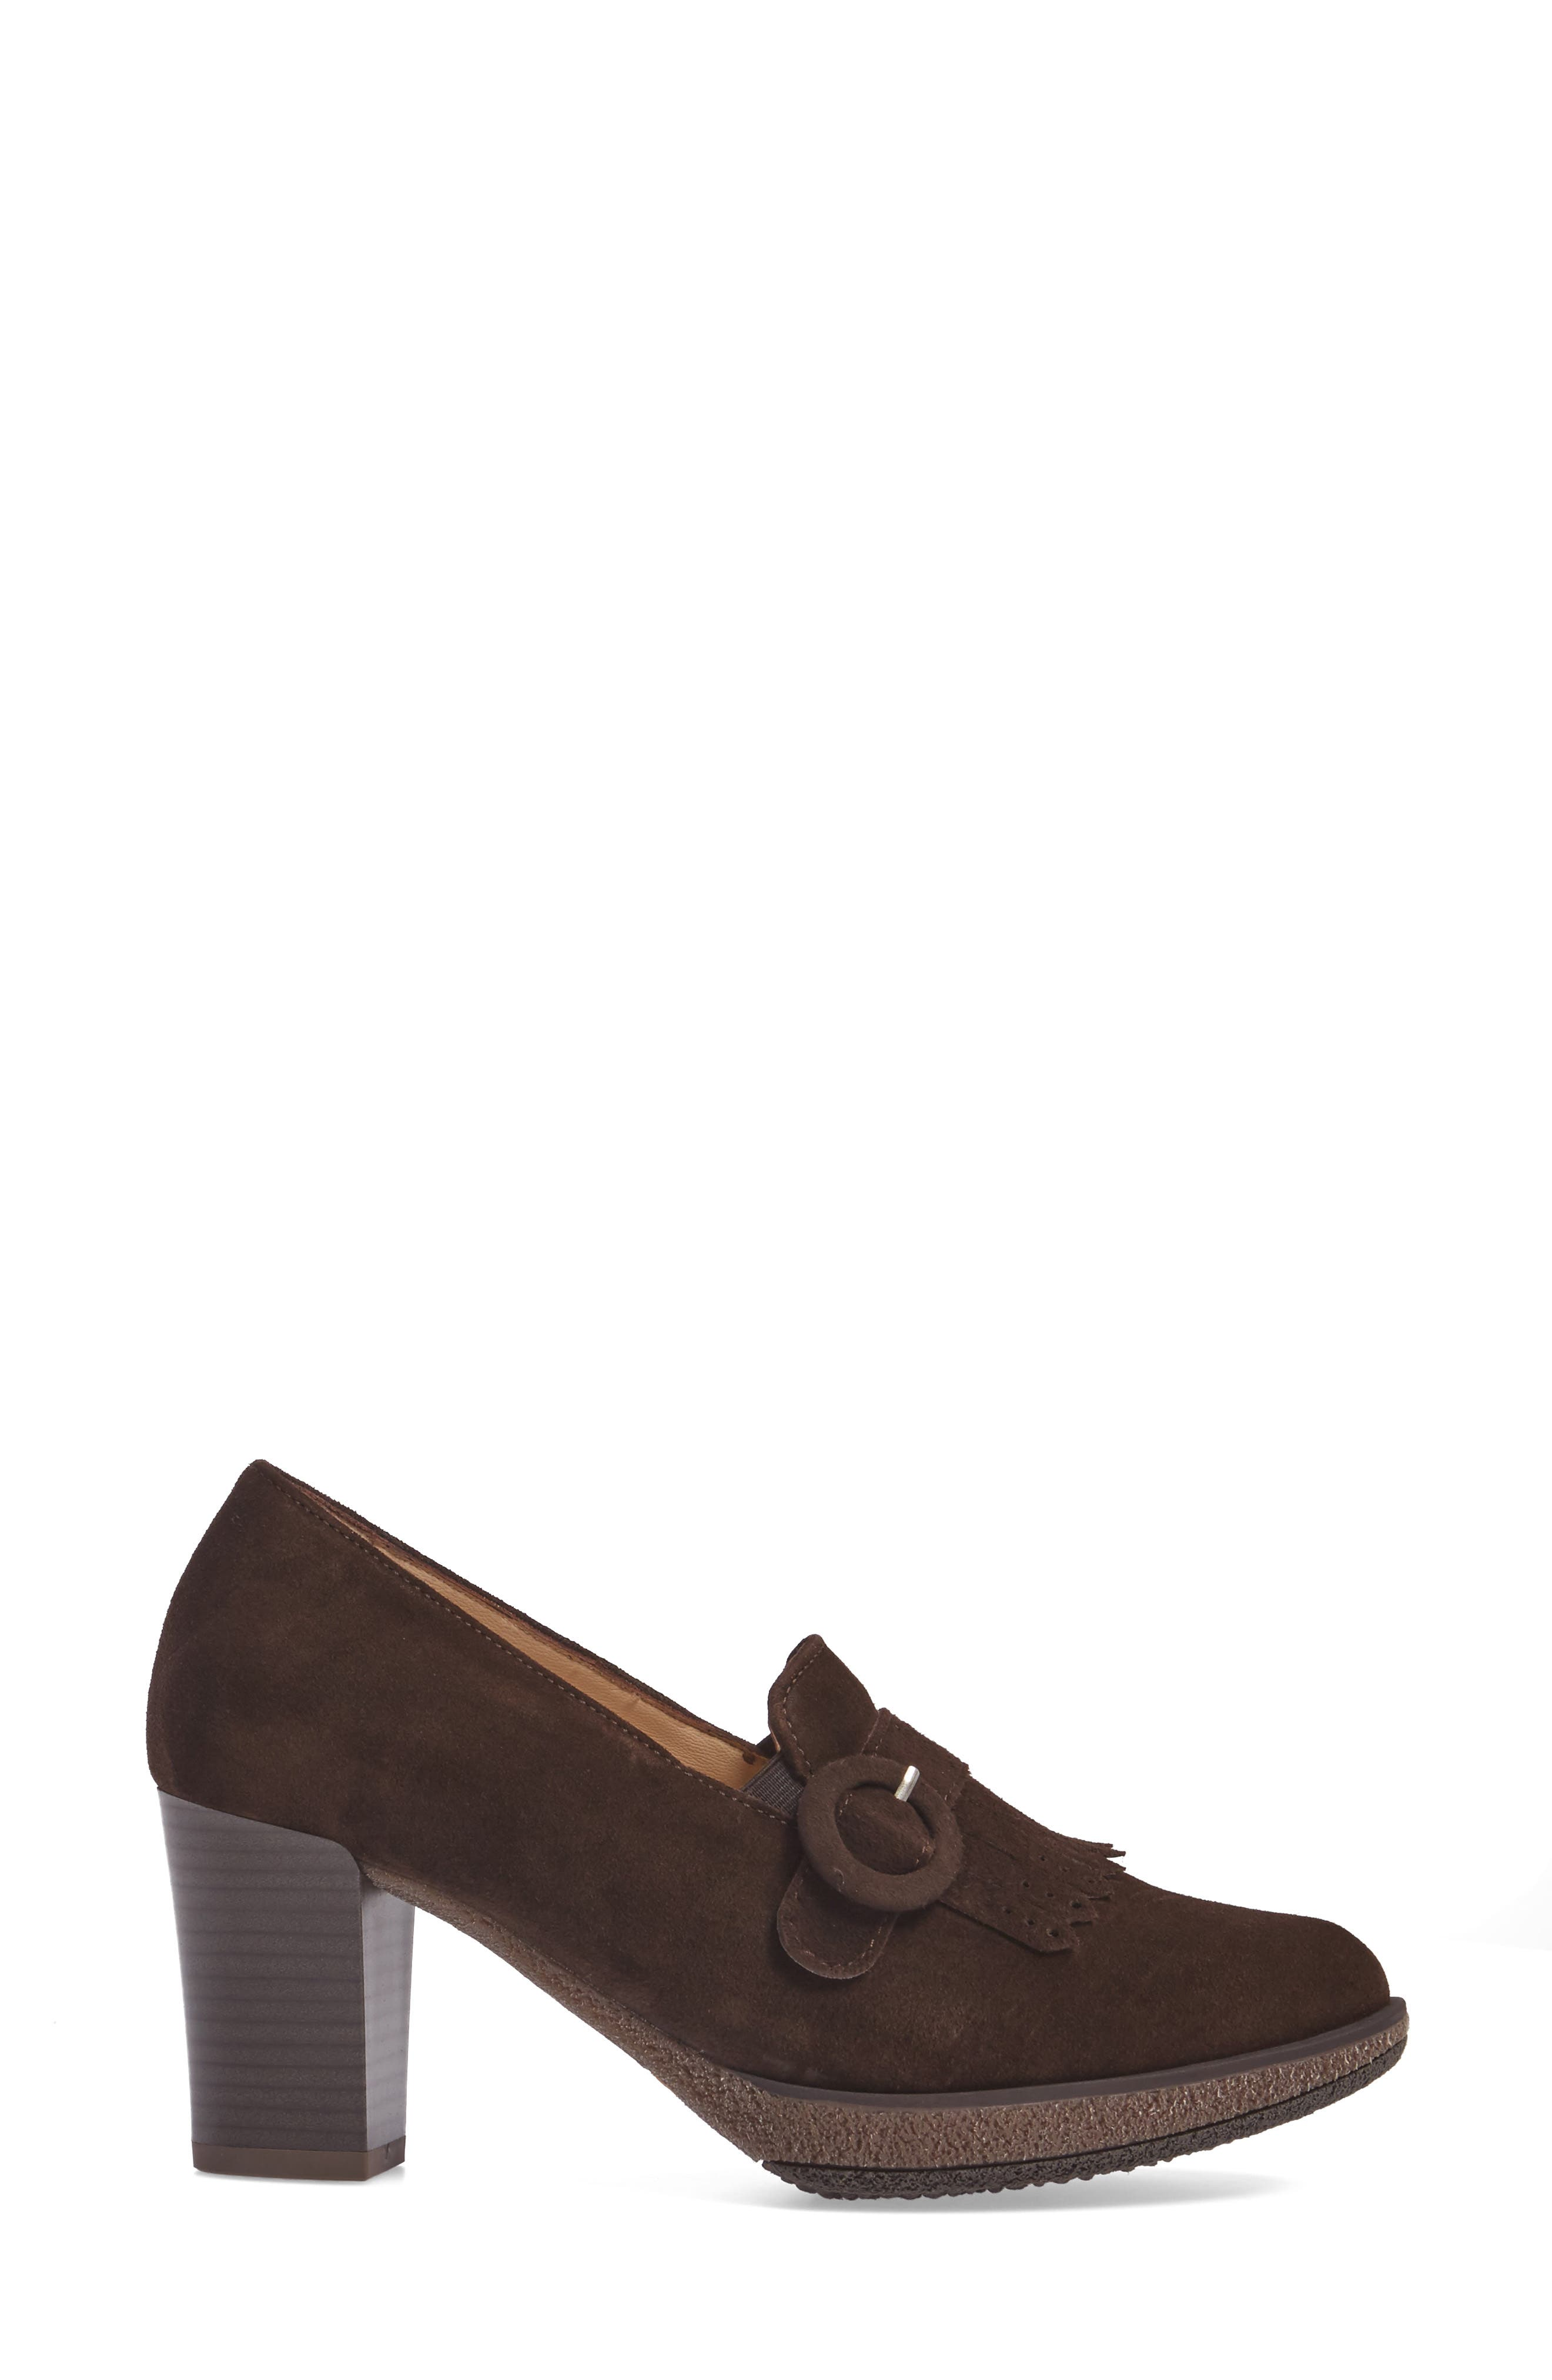 Becky Loafer Pump,                             Alternate thumbnail 3, color,                             BROWN SUEDE